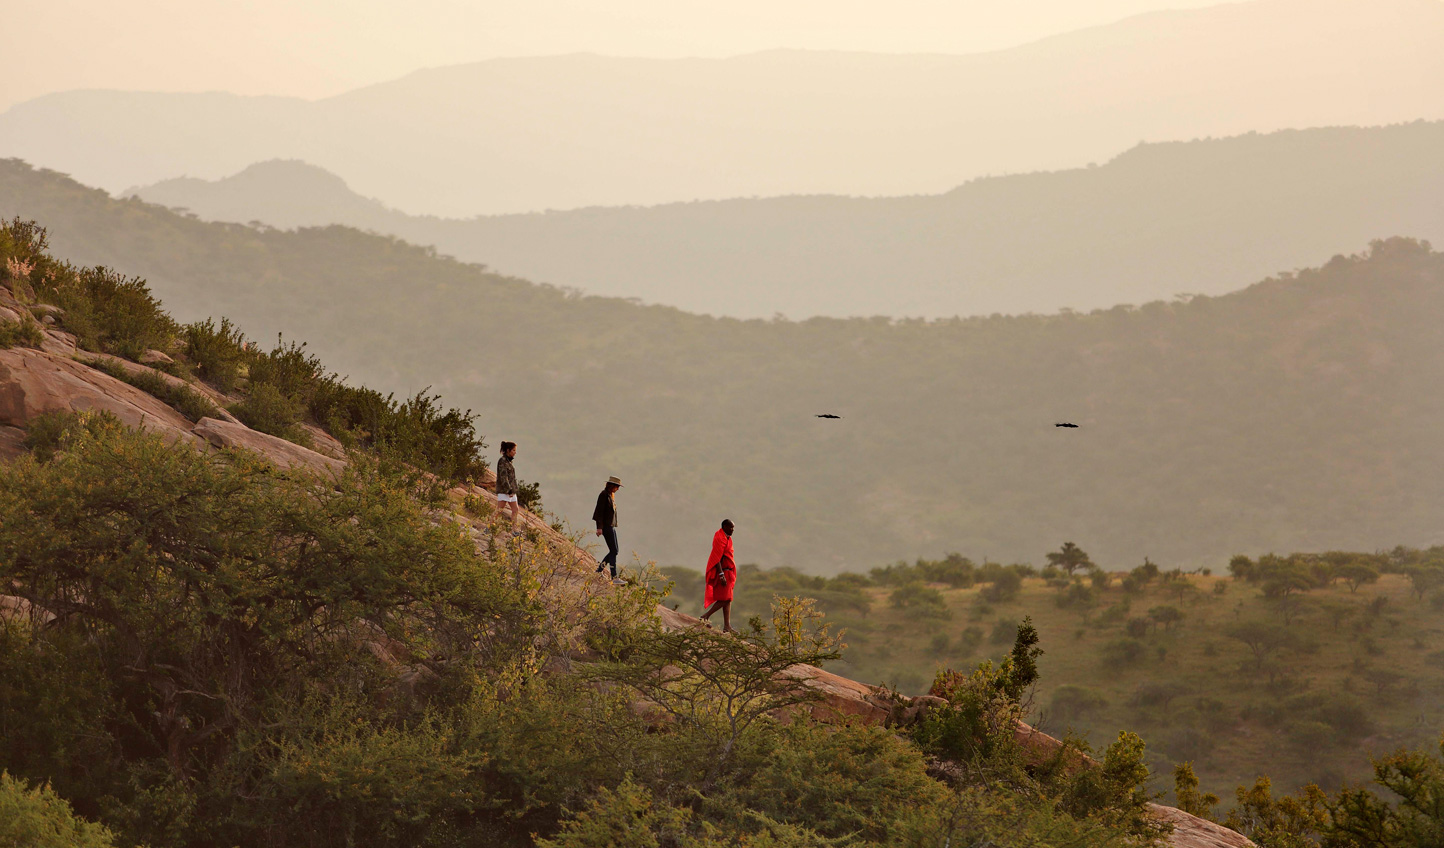 Discover these stunning landscapes in the company of Maasai and Samburu guides